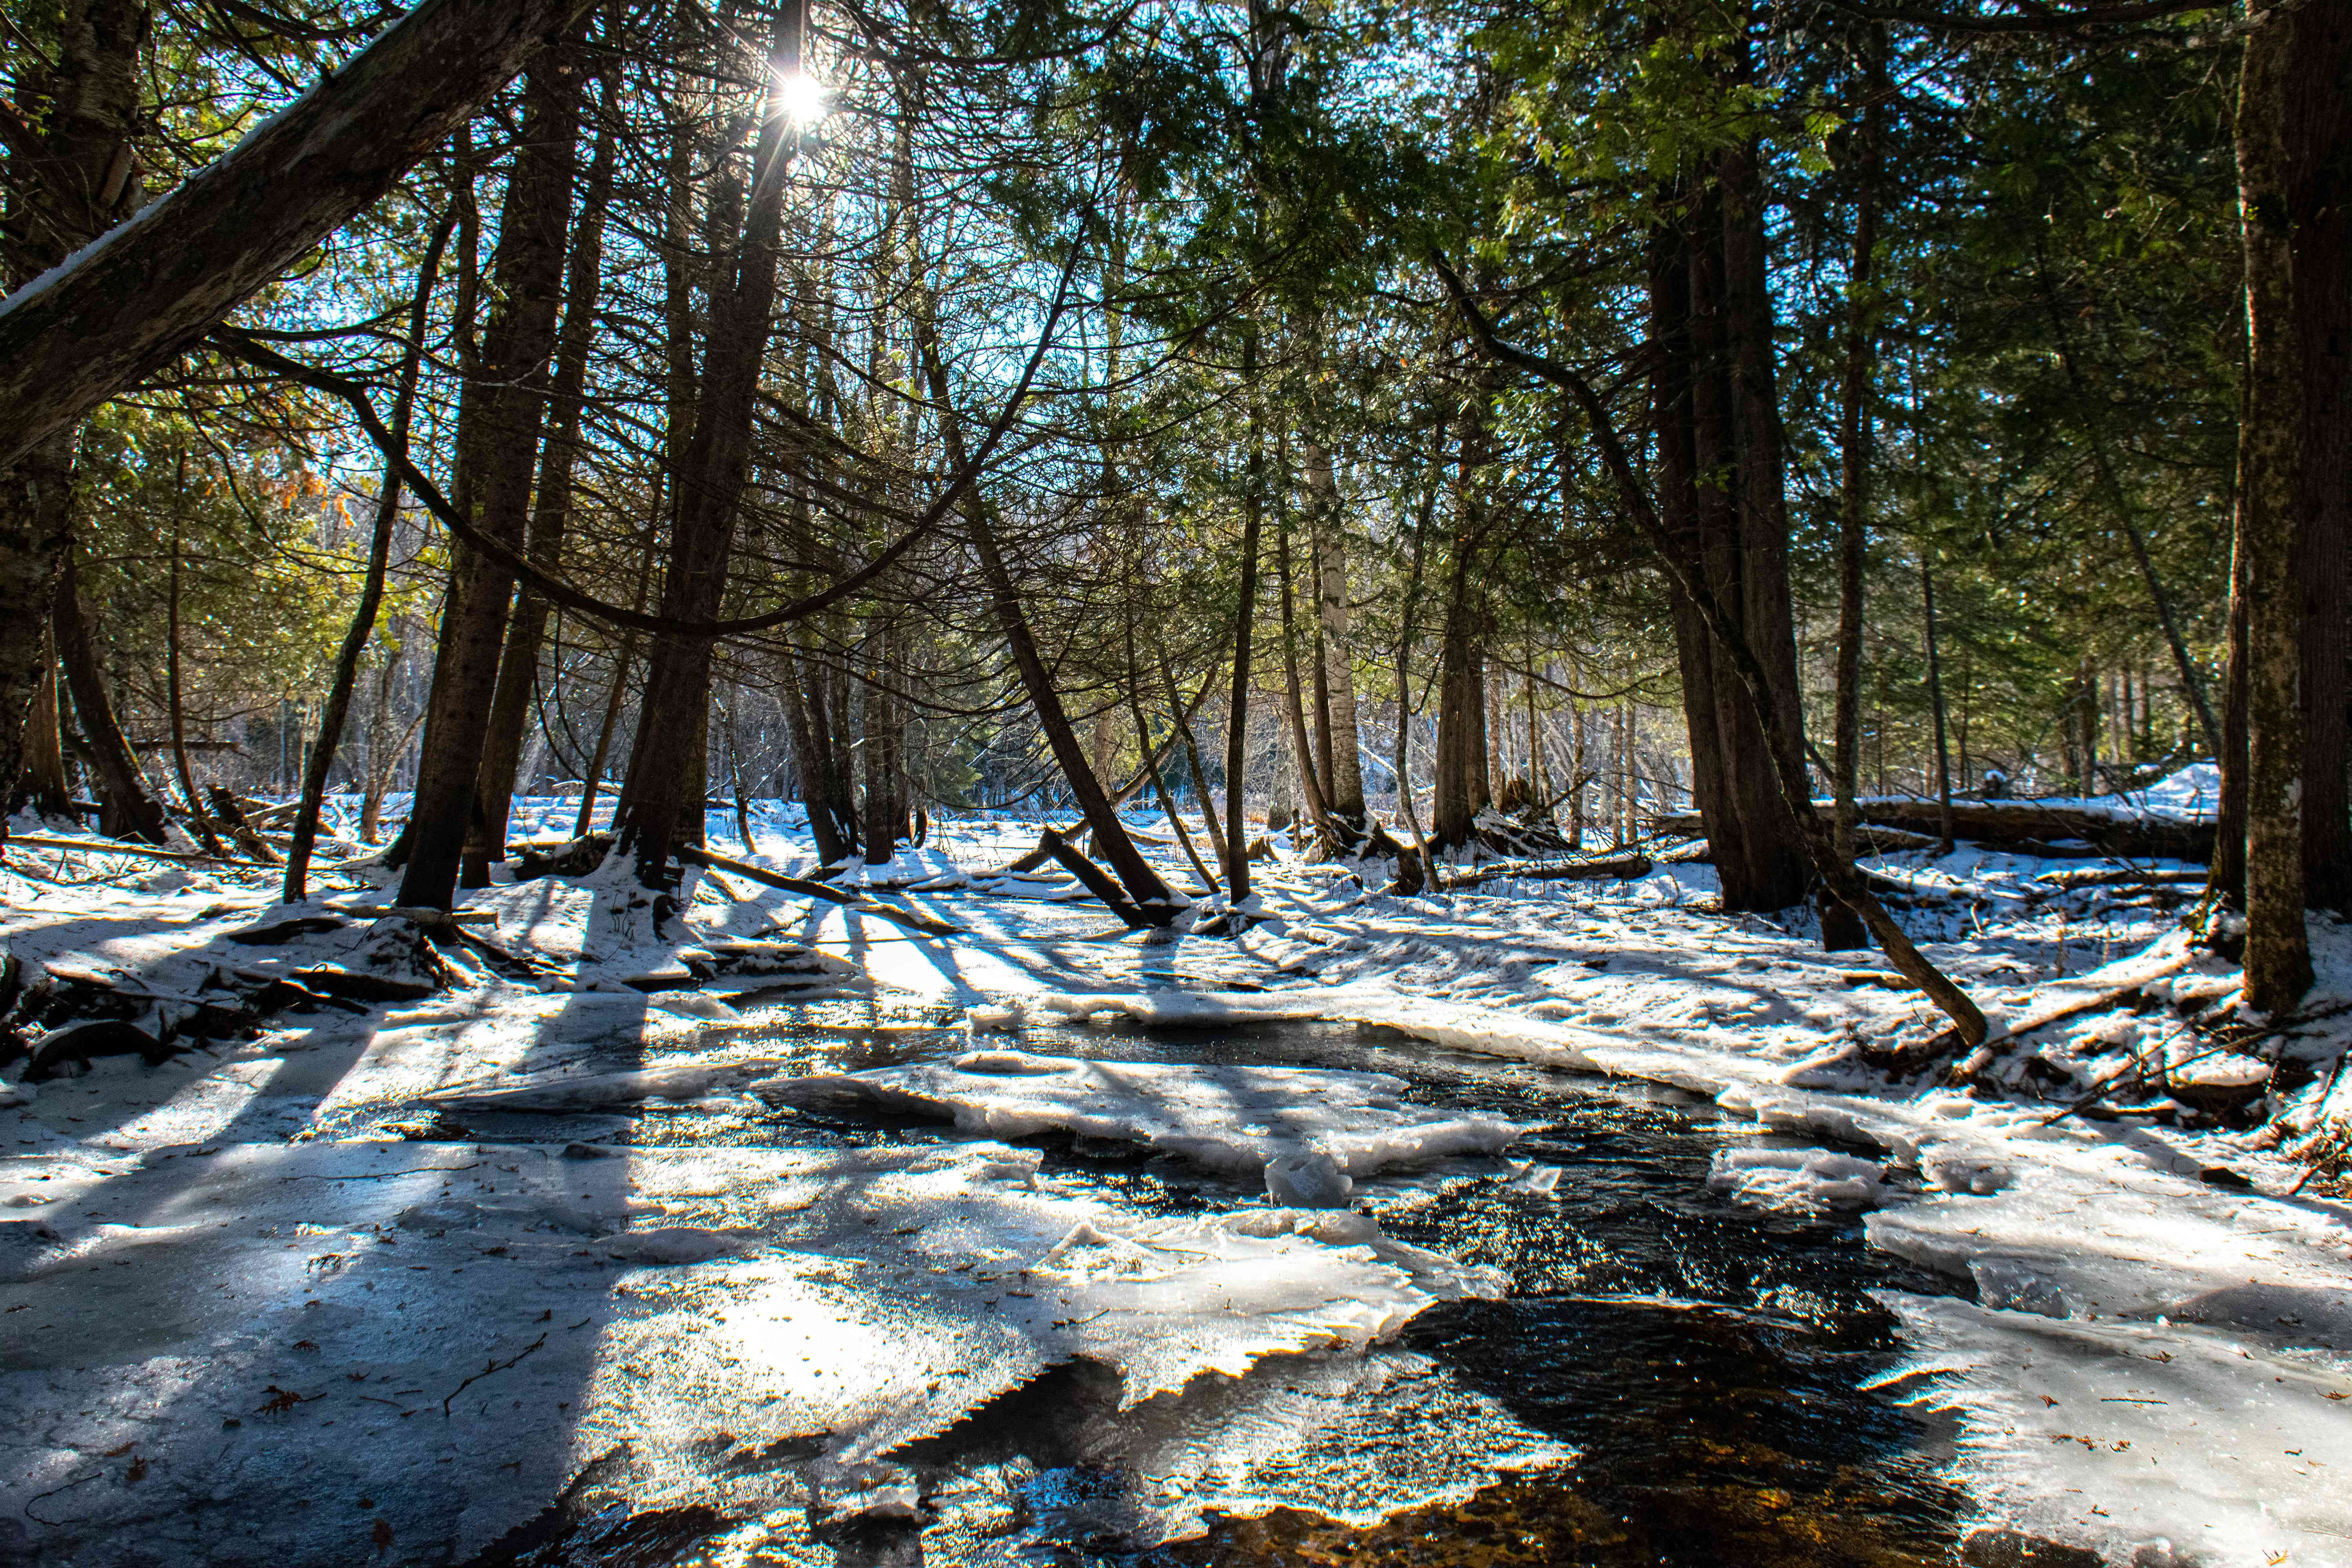 snow melting in sunny forest